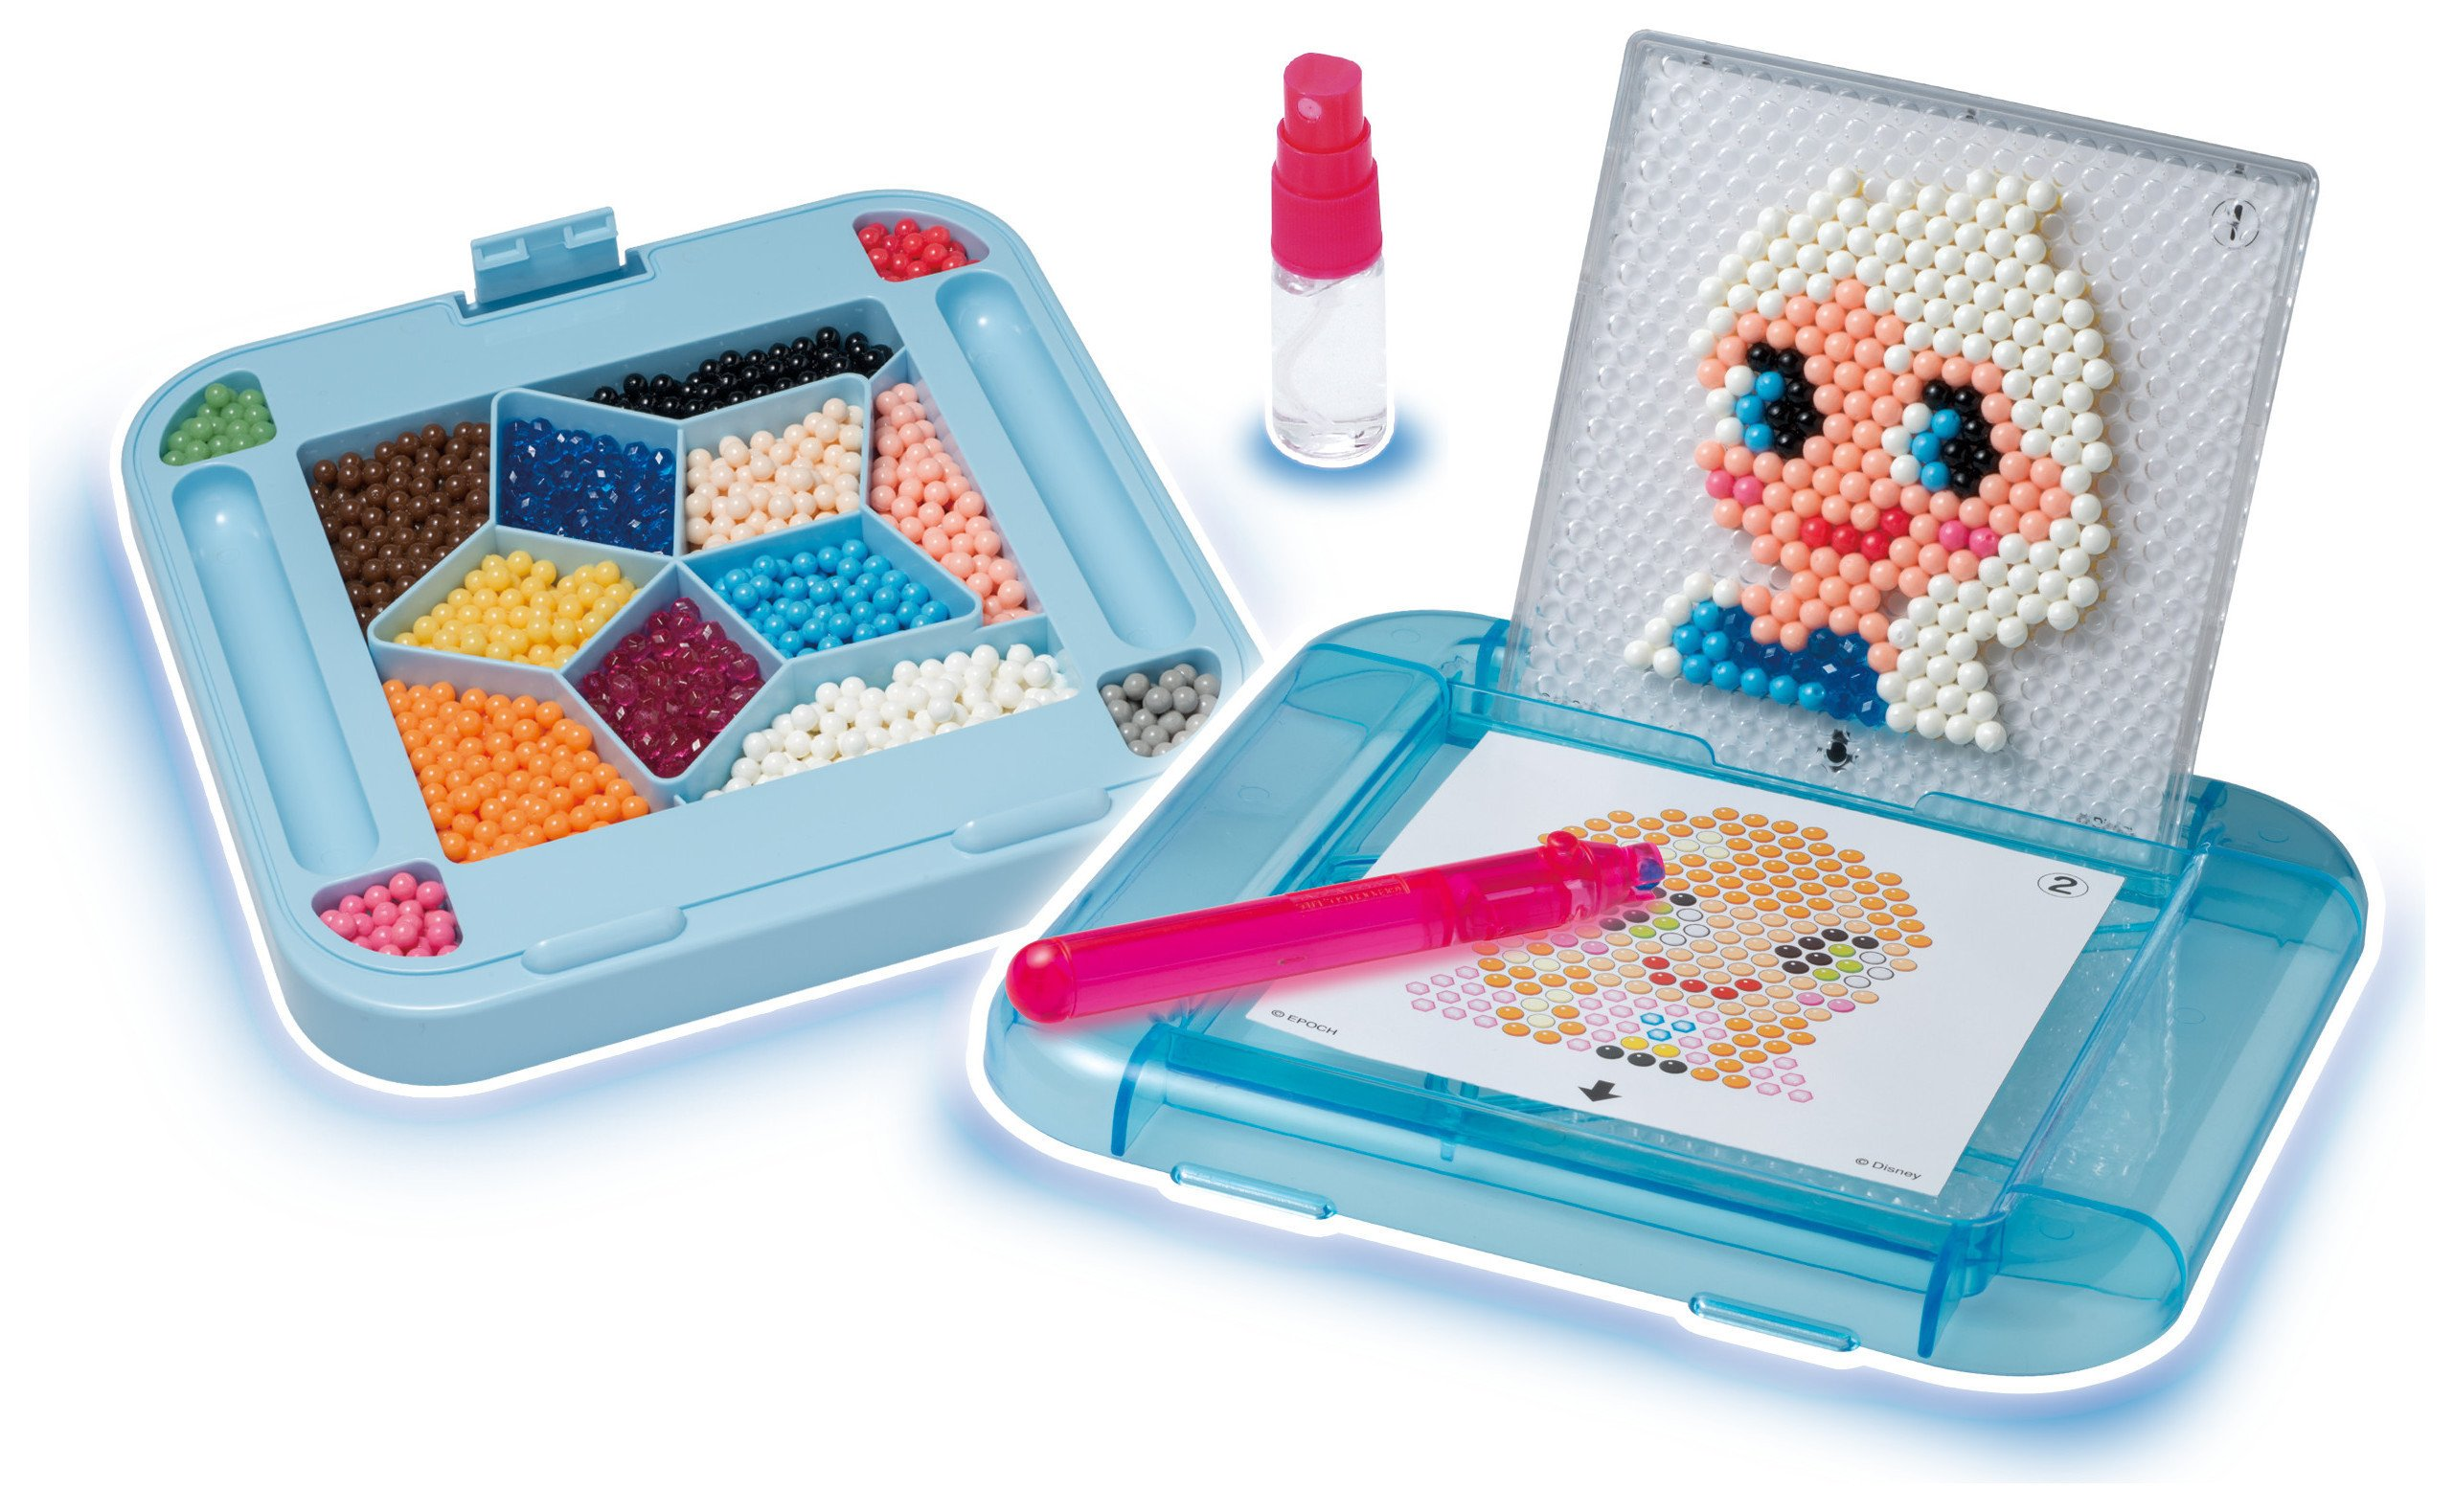 Image of Aquabeads Frozen Playset.